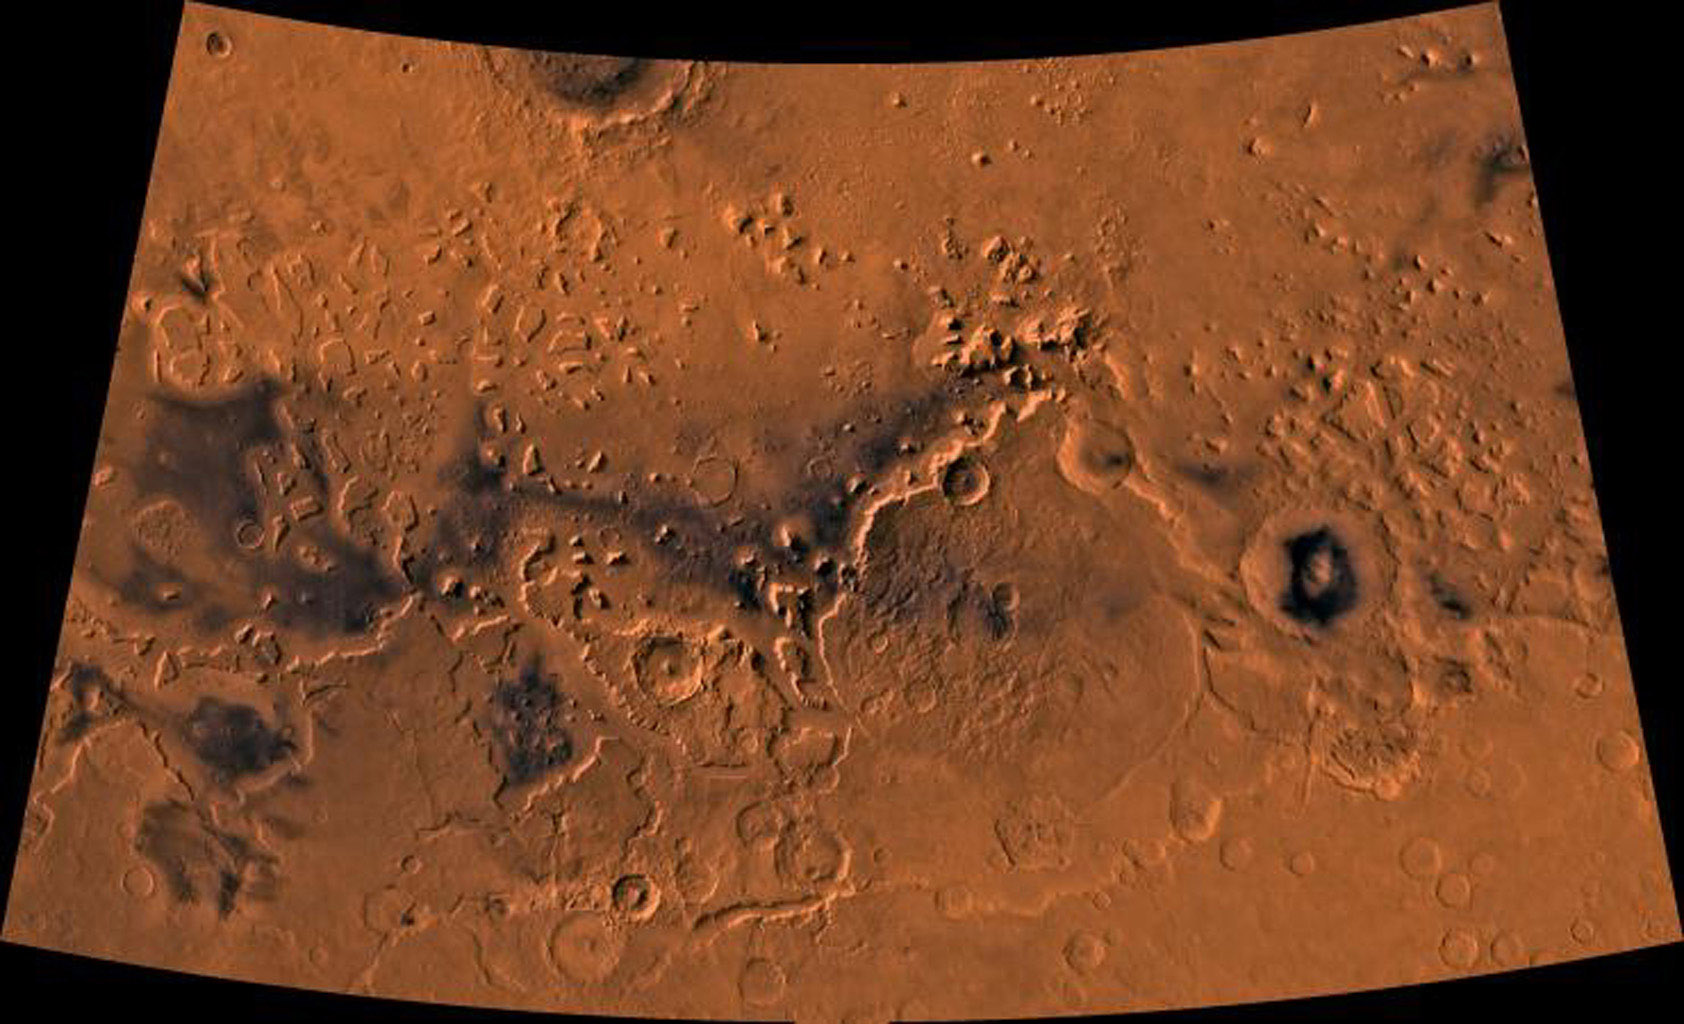 Ismenius Lacus region of Mars containing the impact crater Moreux. This scene shows heavily cratered highlands in the south on relatively smooth lowland plains in the north separated by a belt of dissected terrain, as seen by NASA's Viking spacecraft.